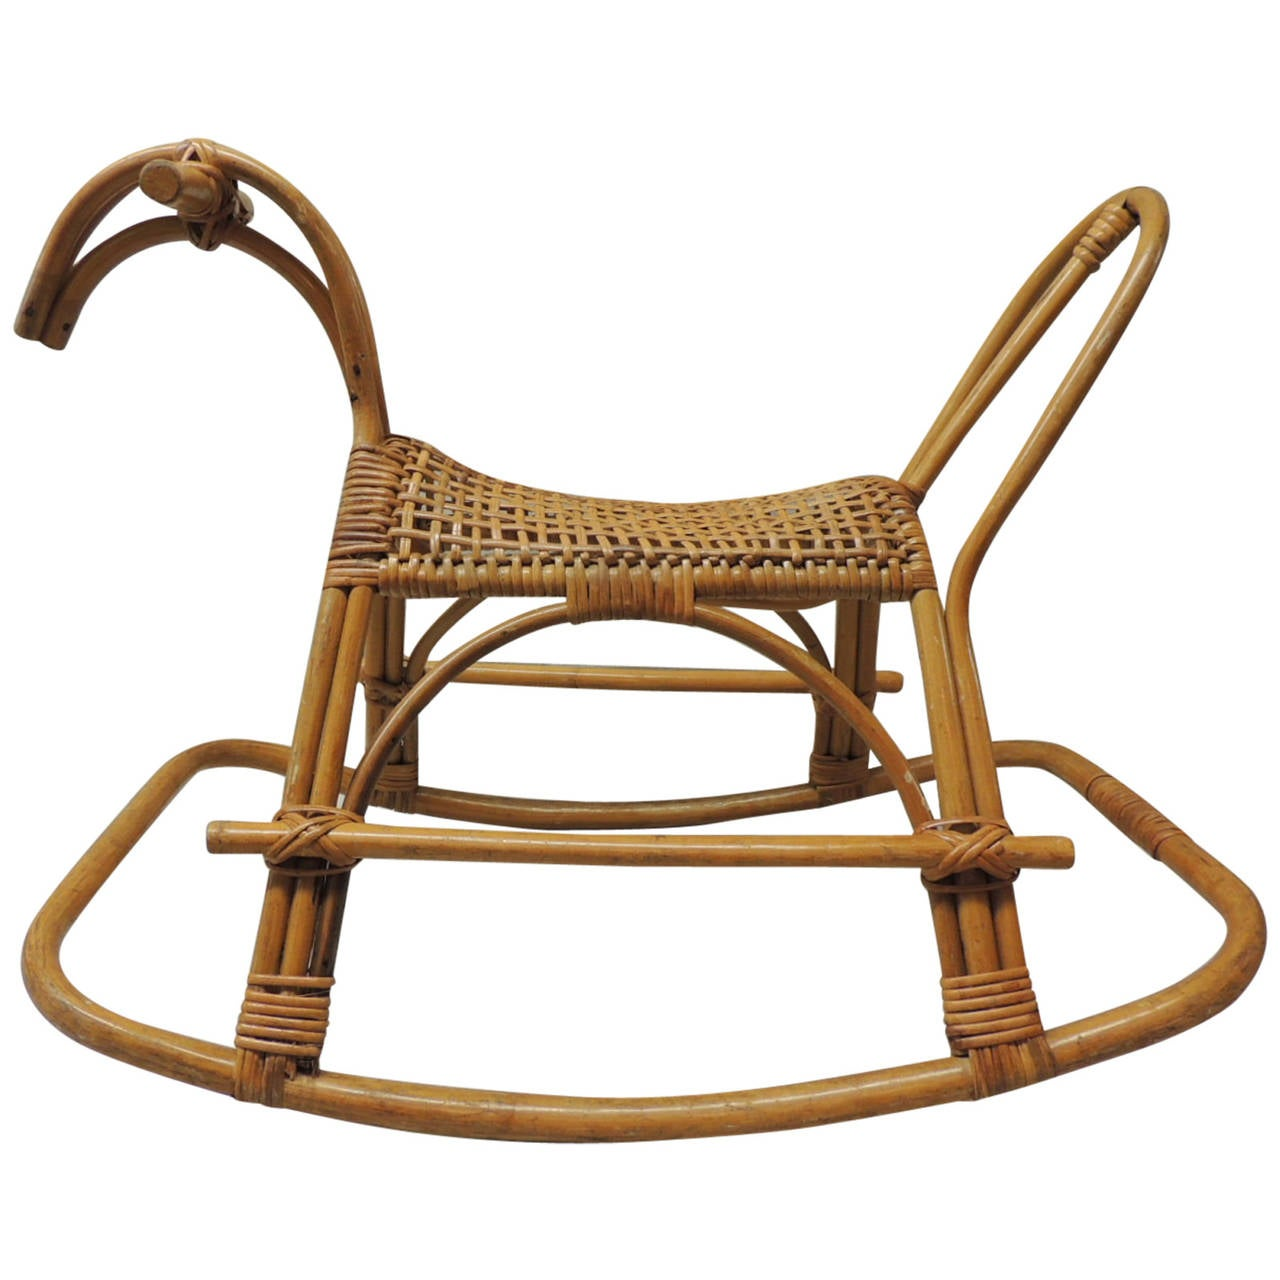 This Franco Albini Bamboo Rocking Horse is no longer available.